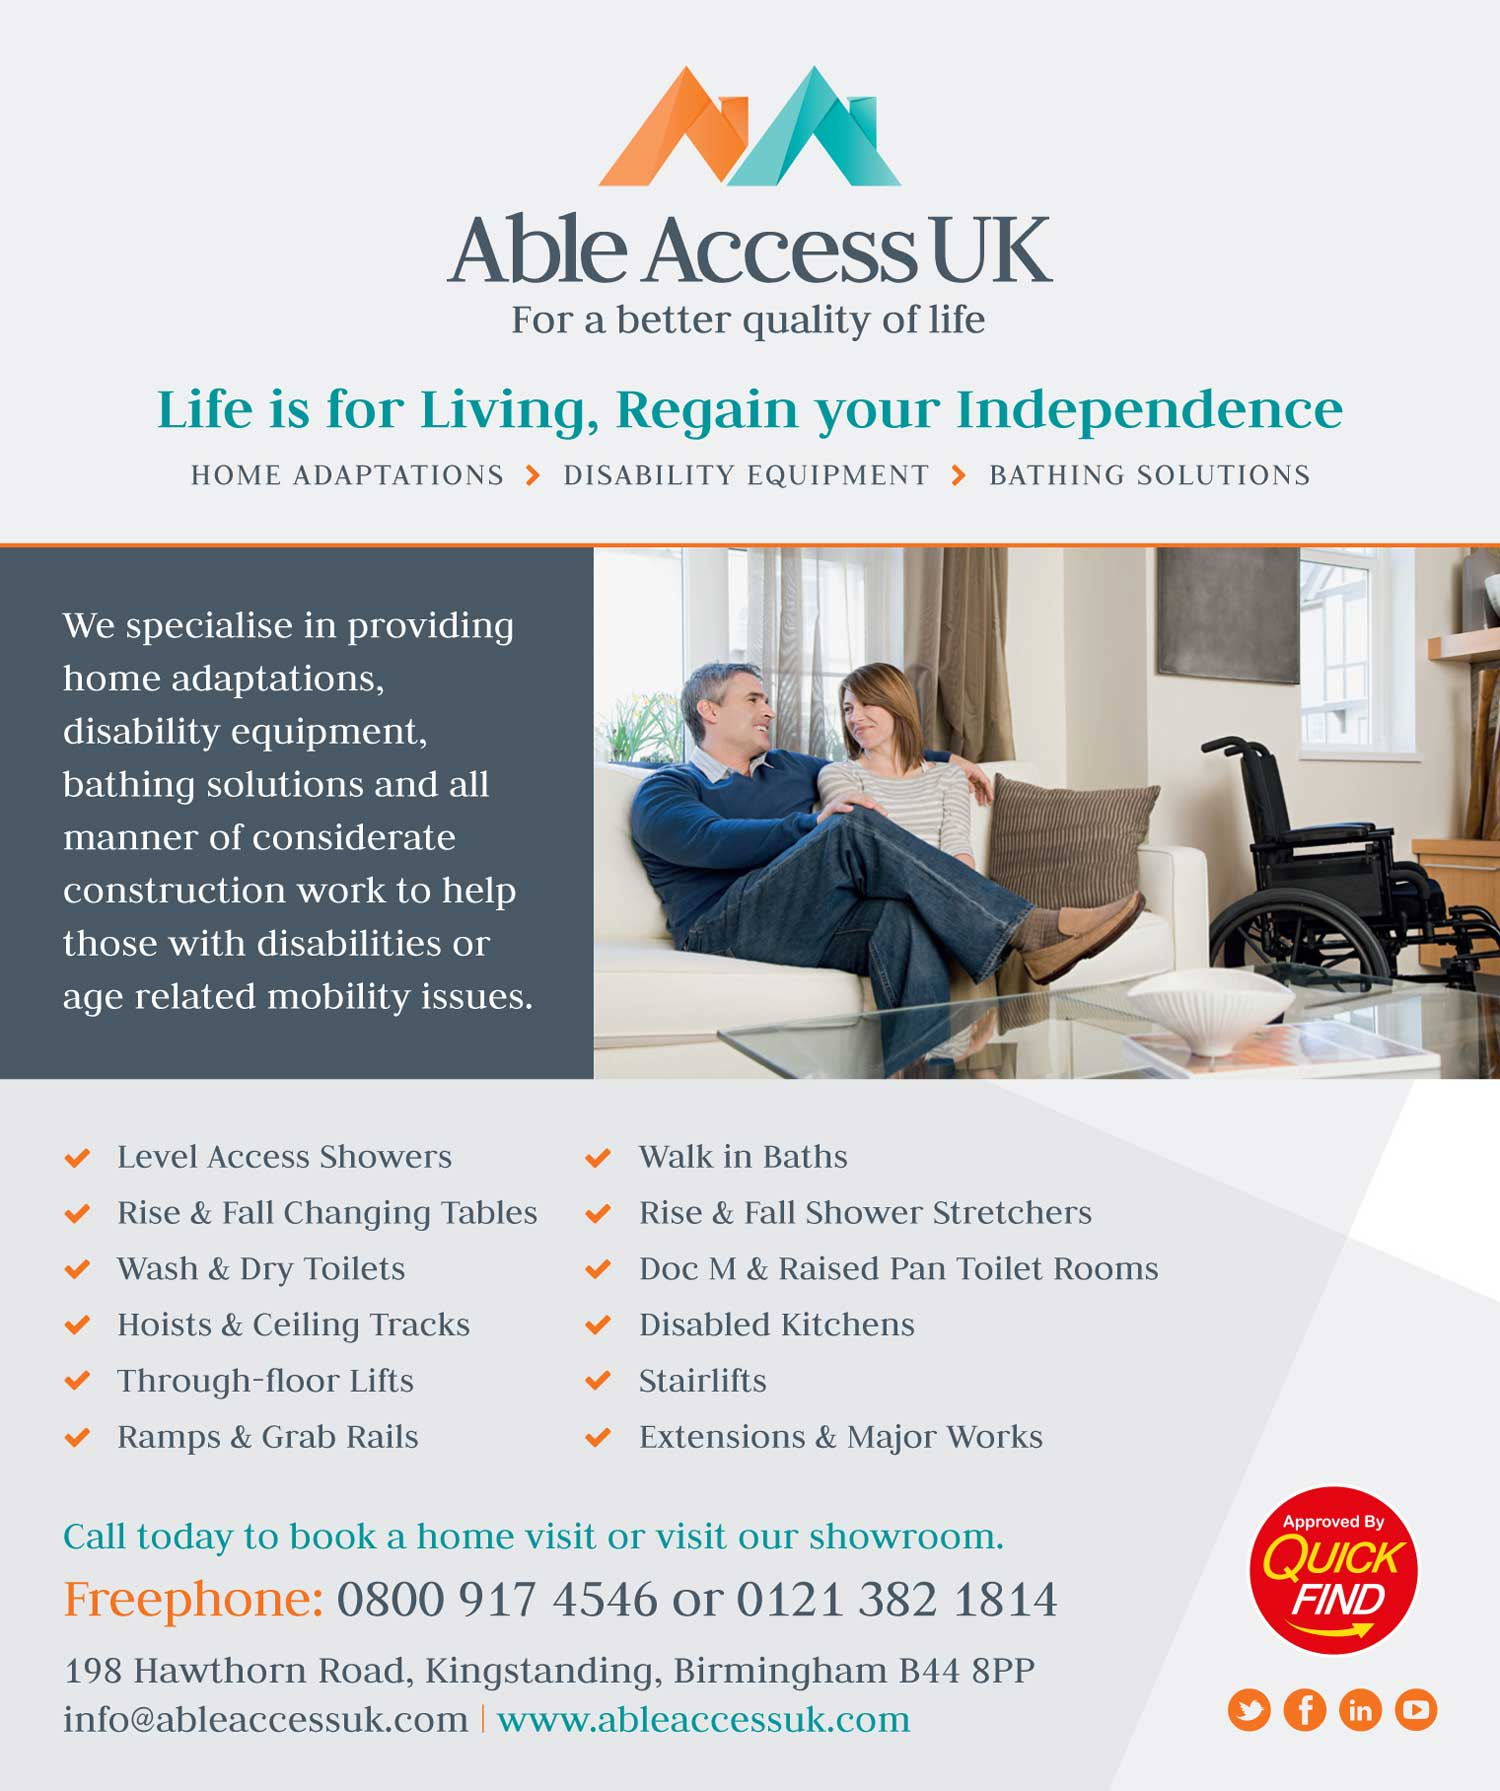 Able Access UK